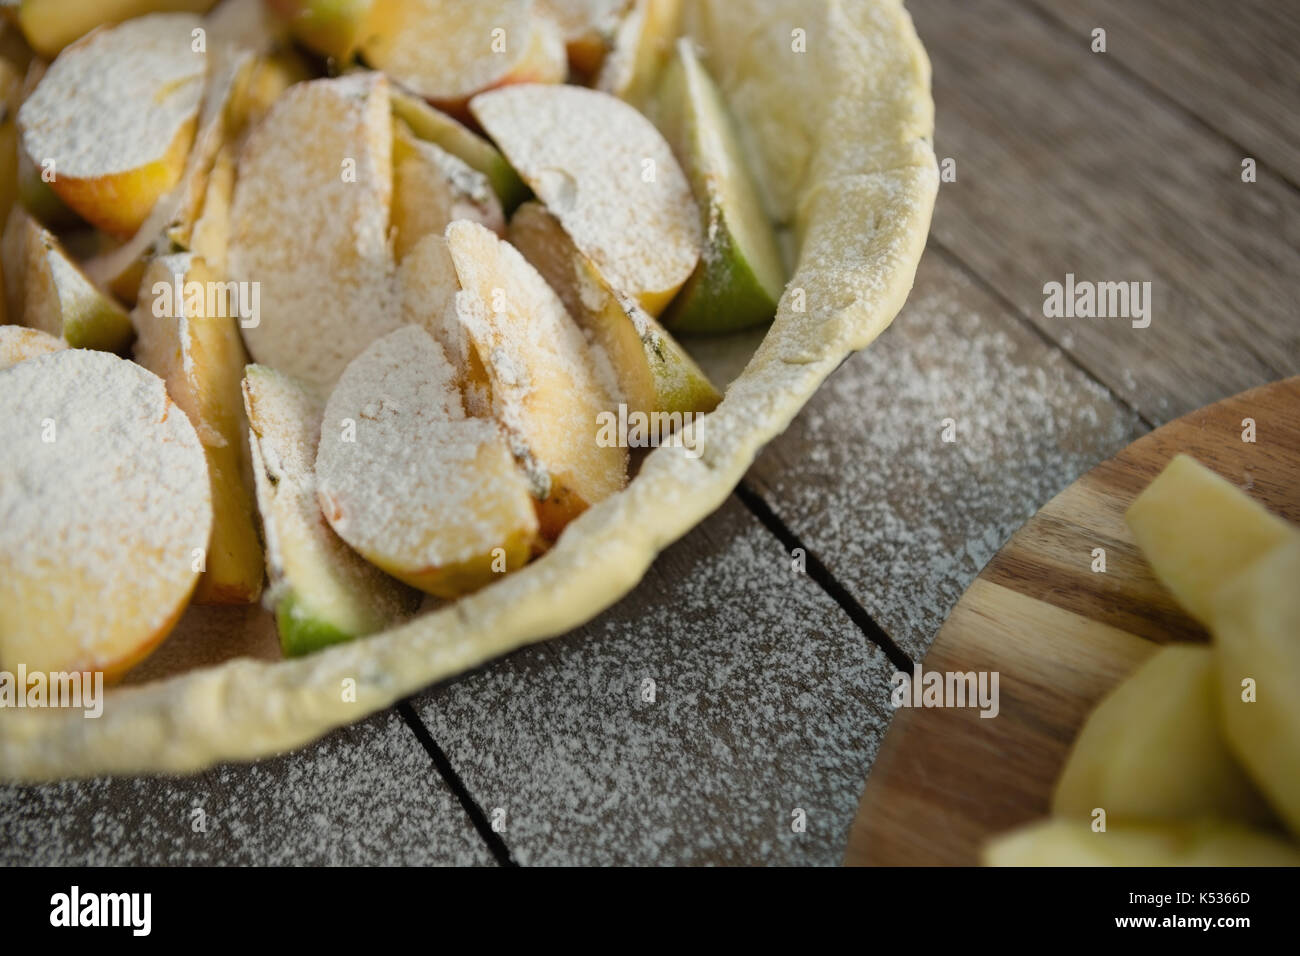 High angle view of powdered sugar on apple slices in baking pan on table - Stock Image